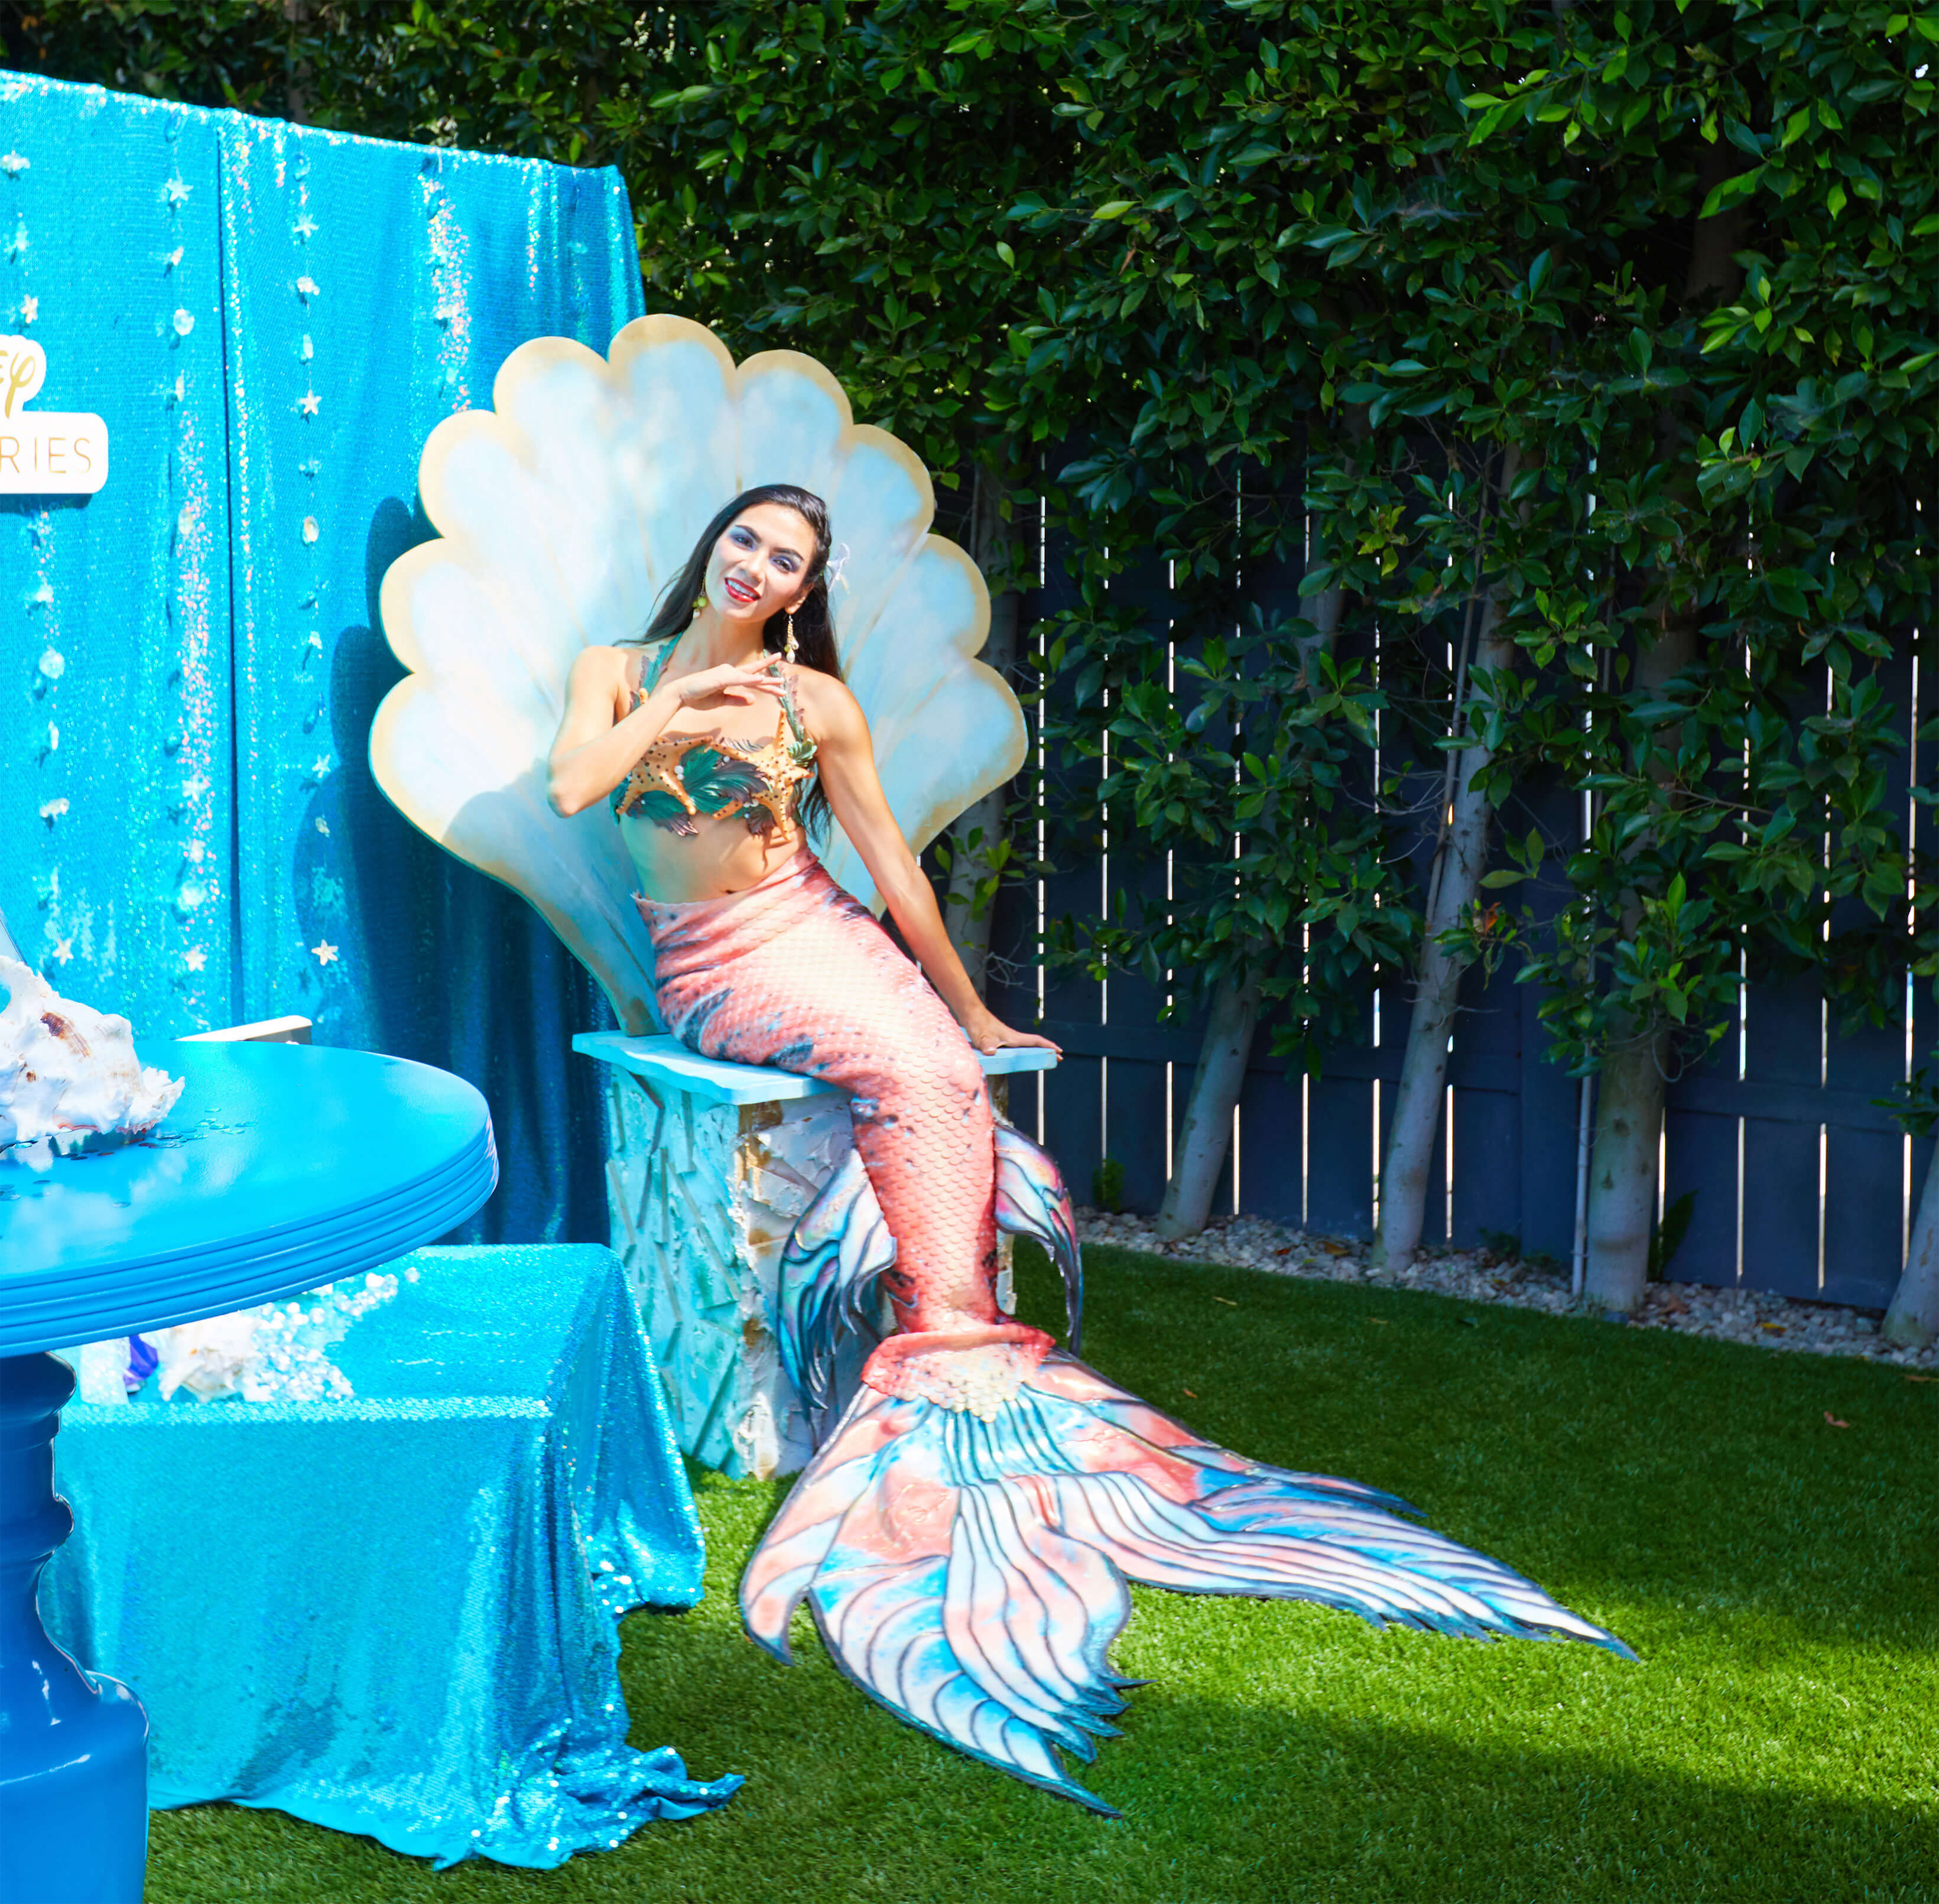 The Marketing Arm used its creative and experiential marketing expertise to transform the space into a modern Disney Princess wonderland for Gen Z influencers and VIP guests to enjoy.